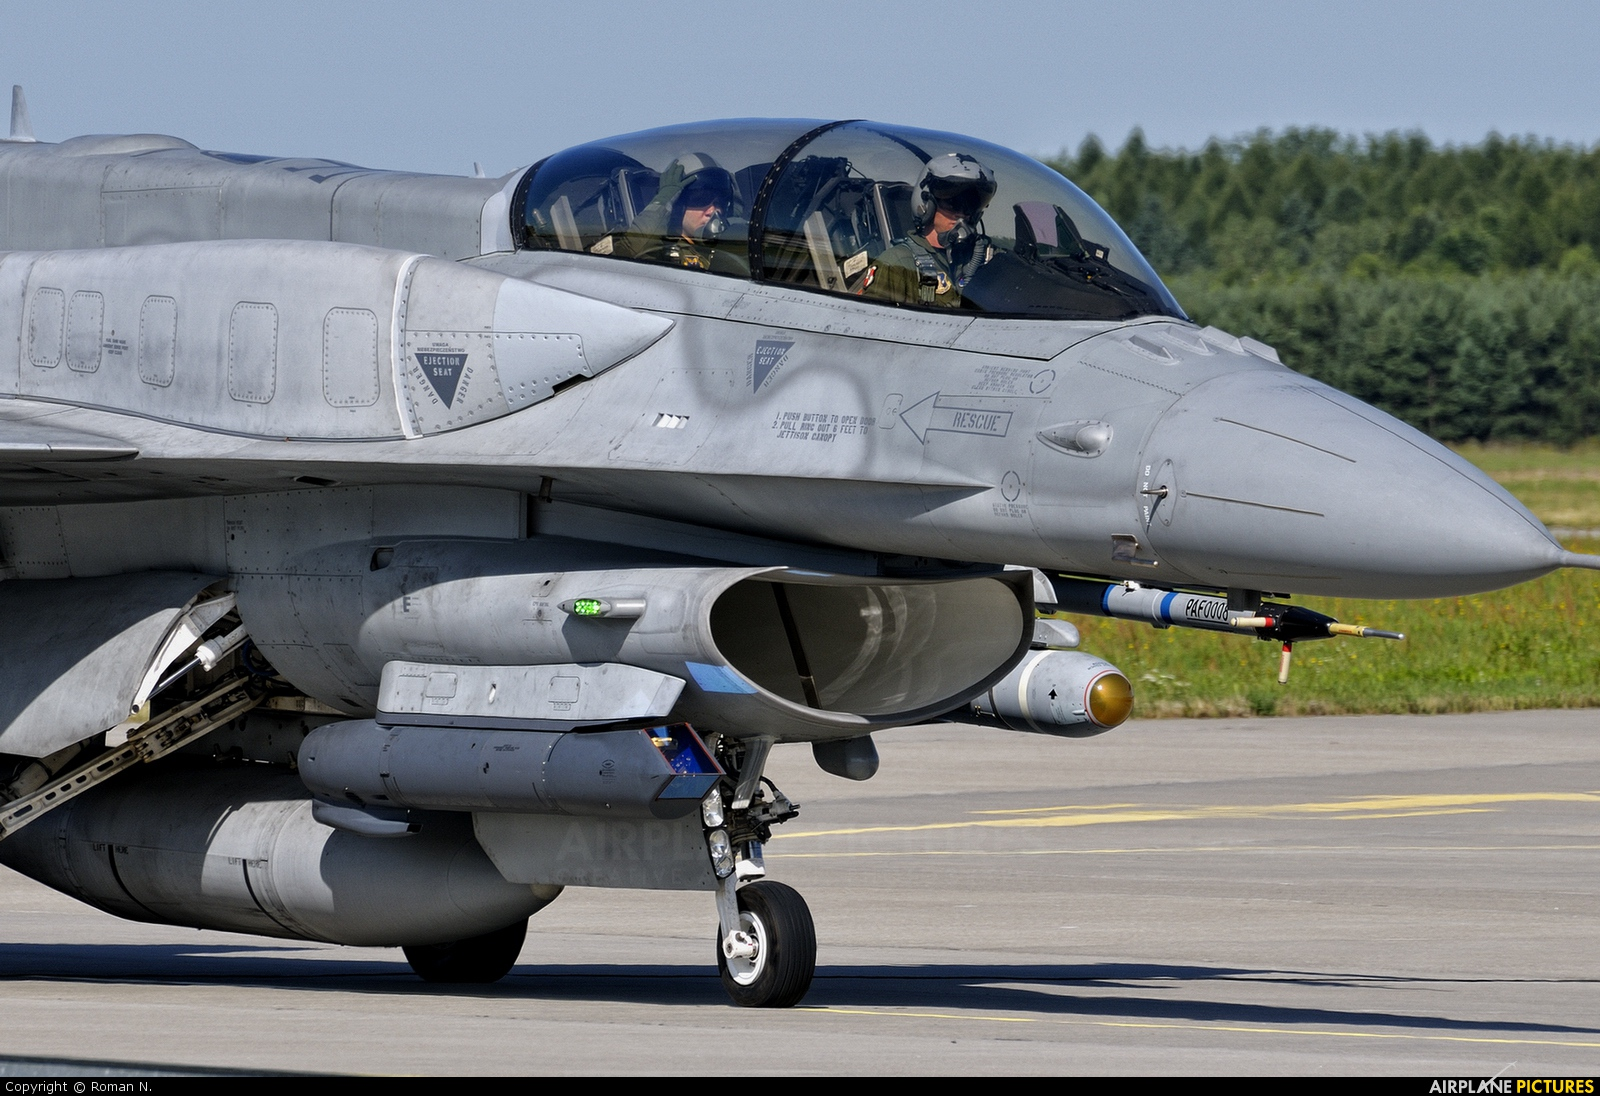 Poland - Air Force 4076 aircraft at Poznań - Krzesiny